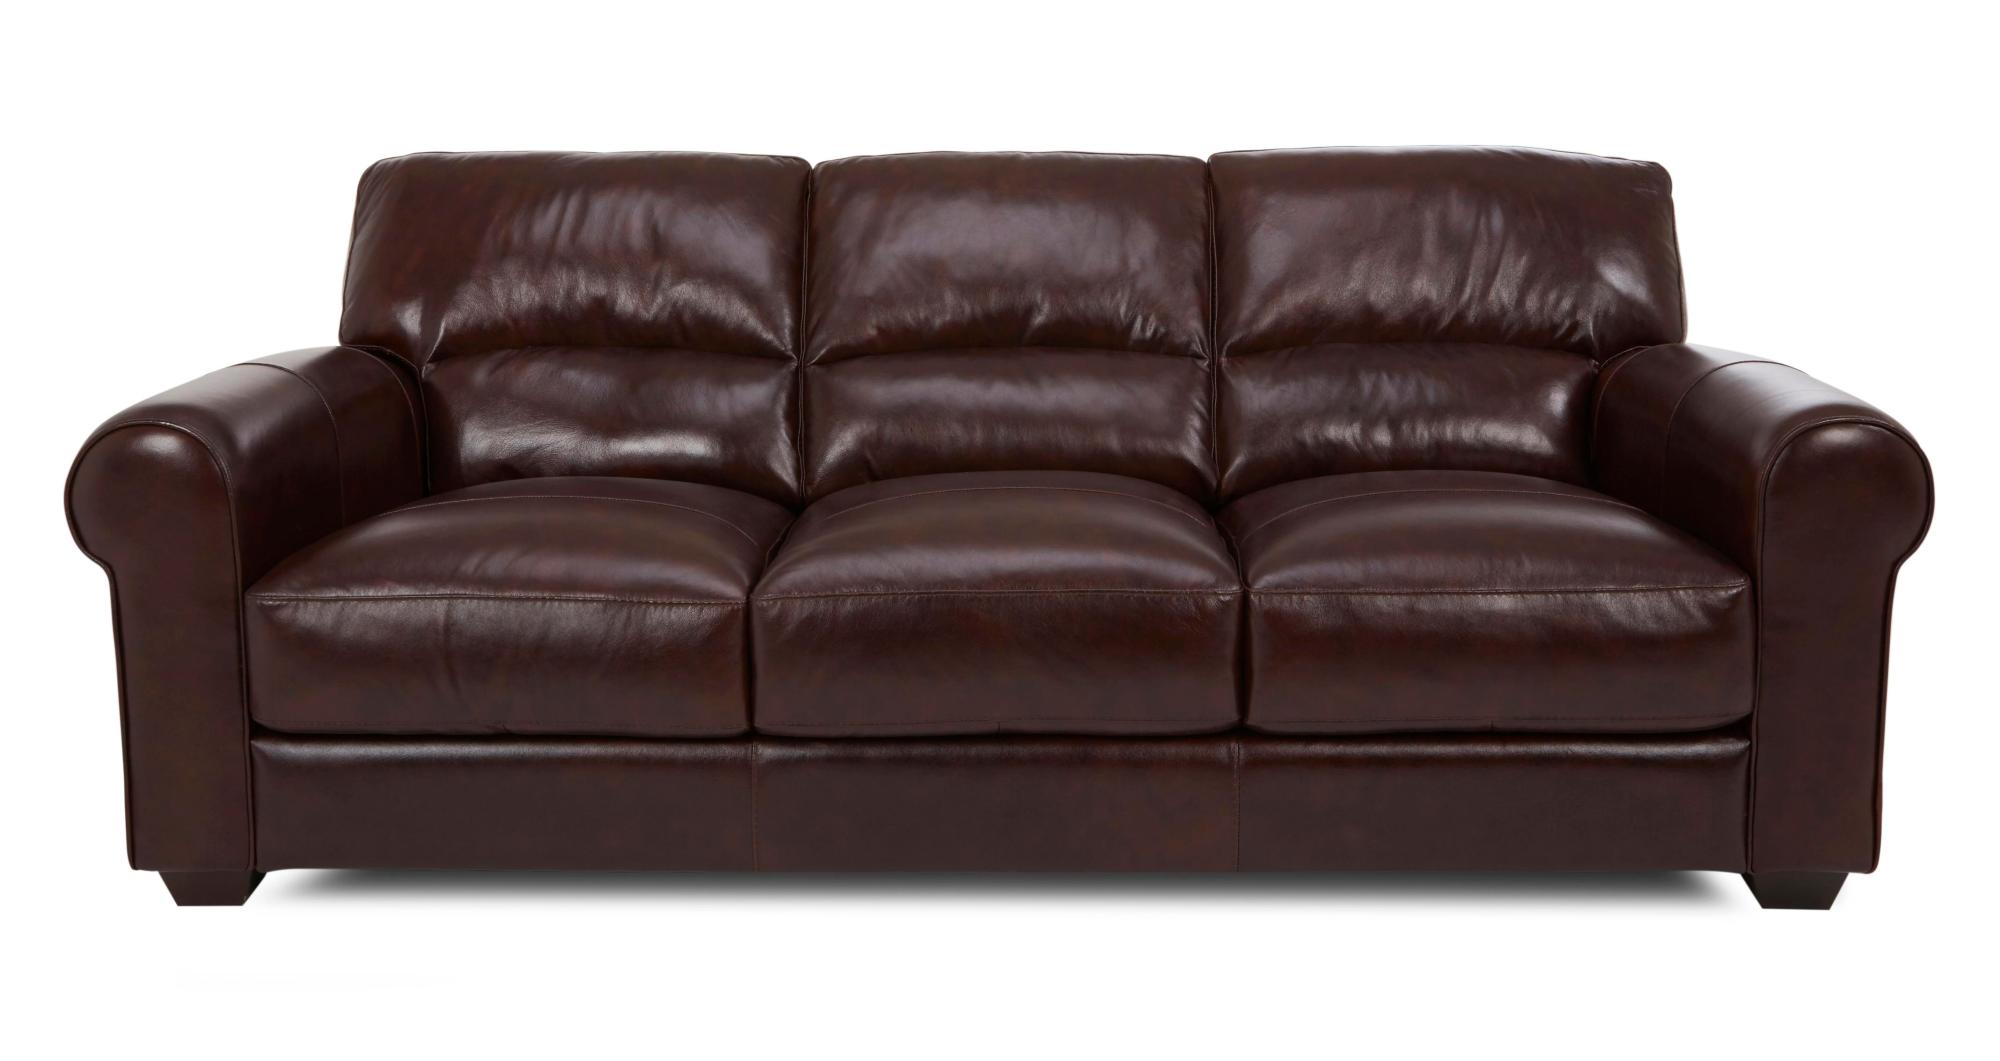 100 Leather Recliner. Red Leather Recliner Chair EBay. DFS